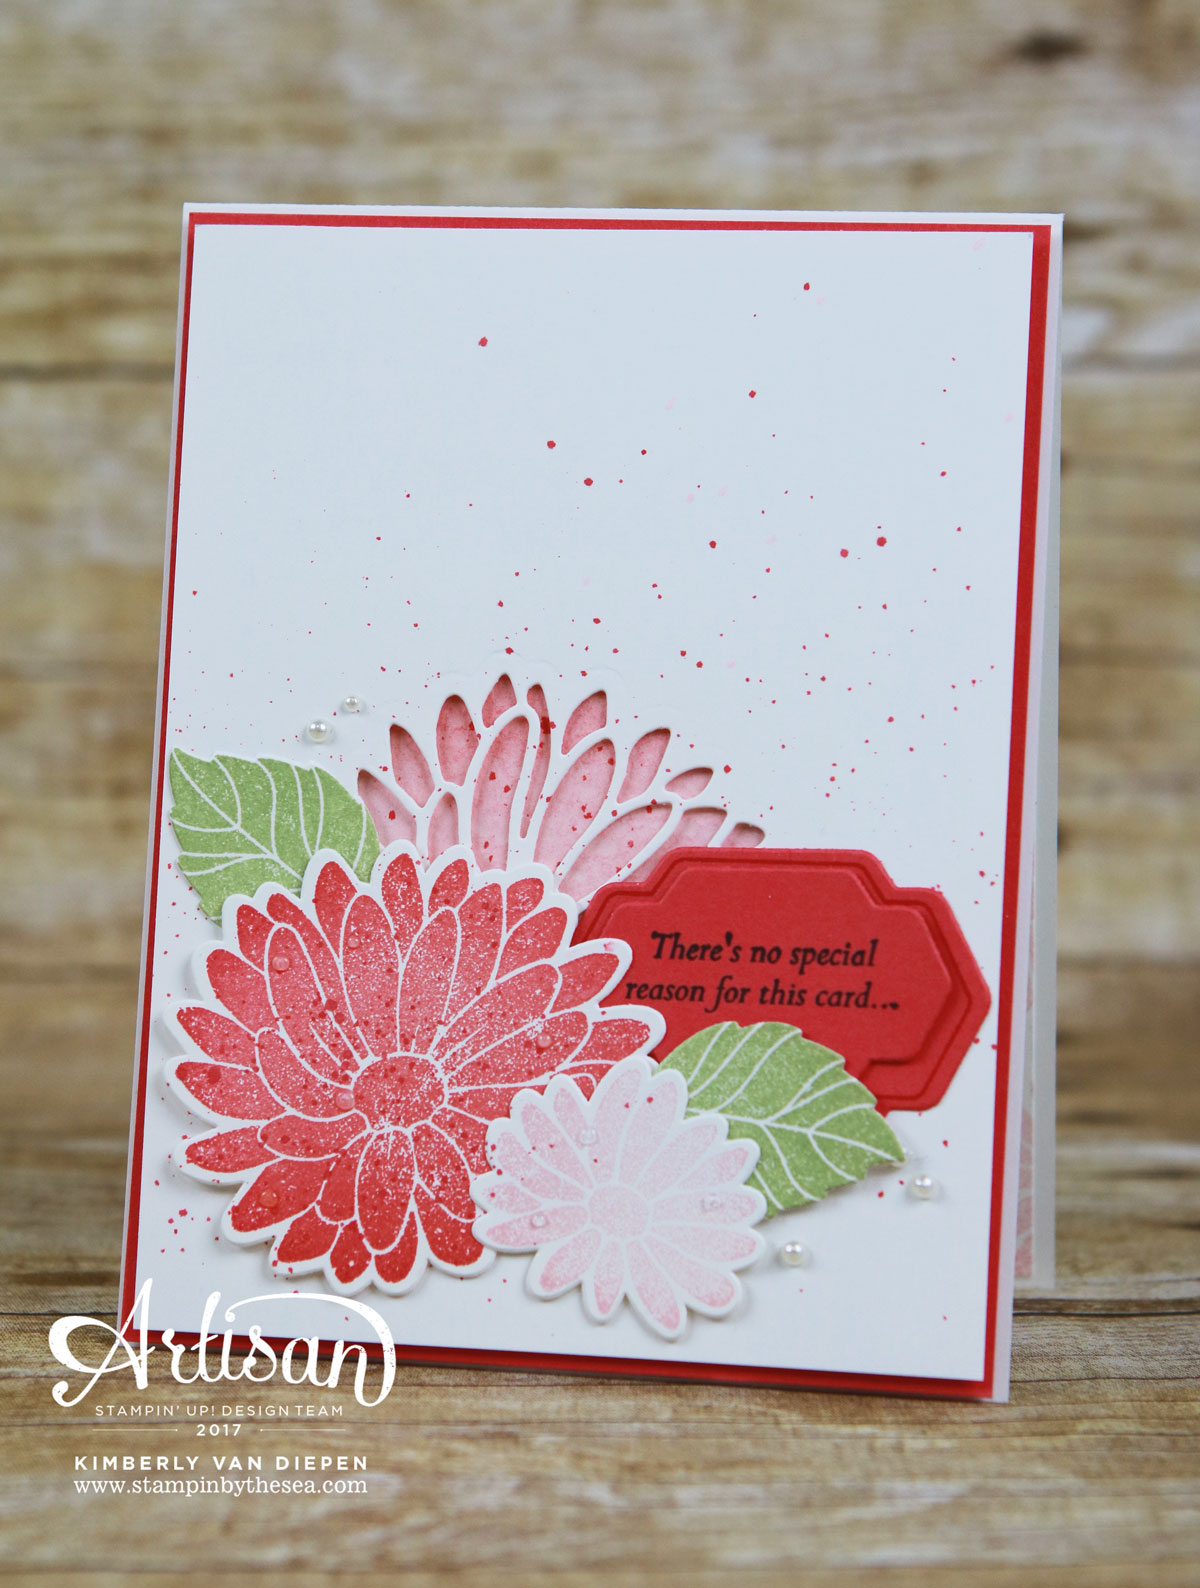 Special Reason, Stampin' Up!